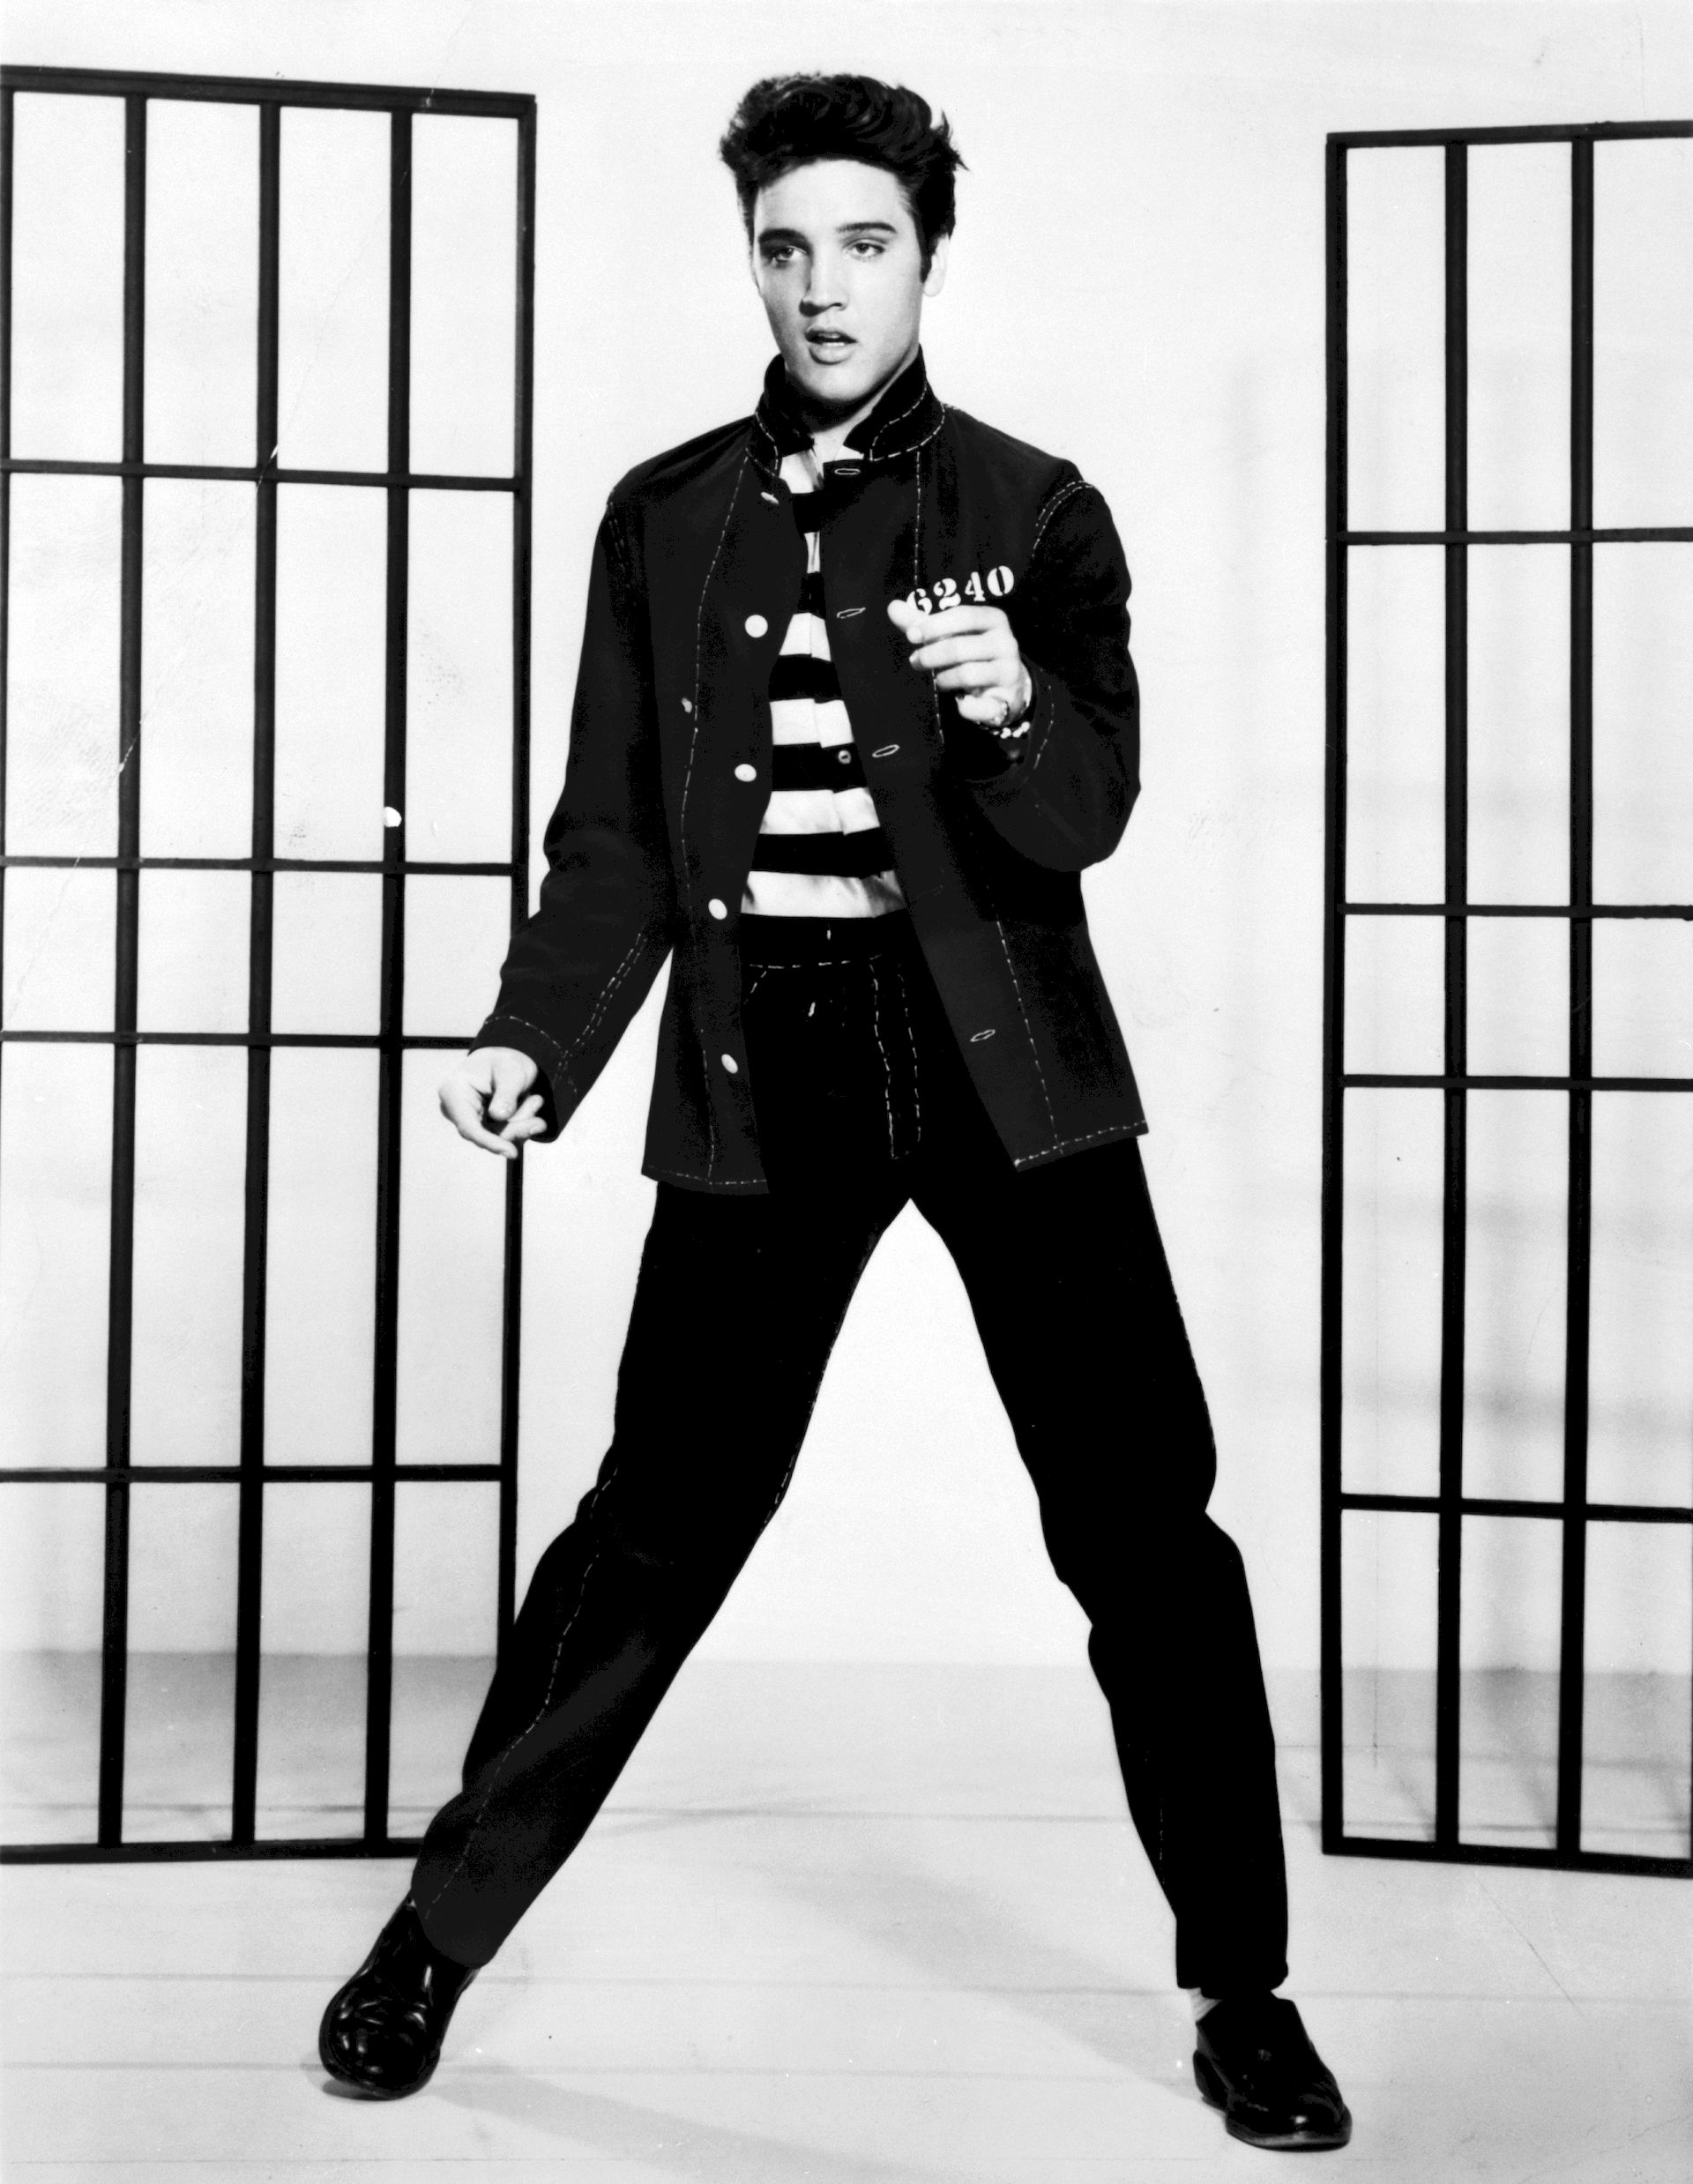 Photo of Elvis Presley: Singer from the United States